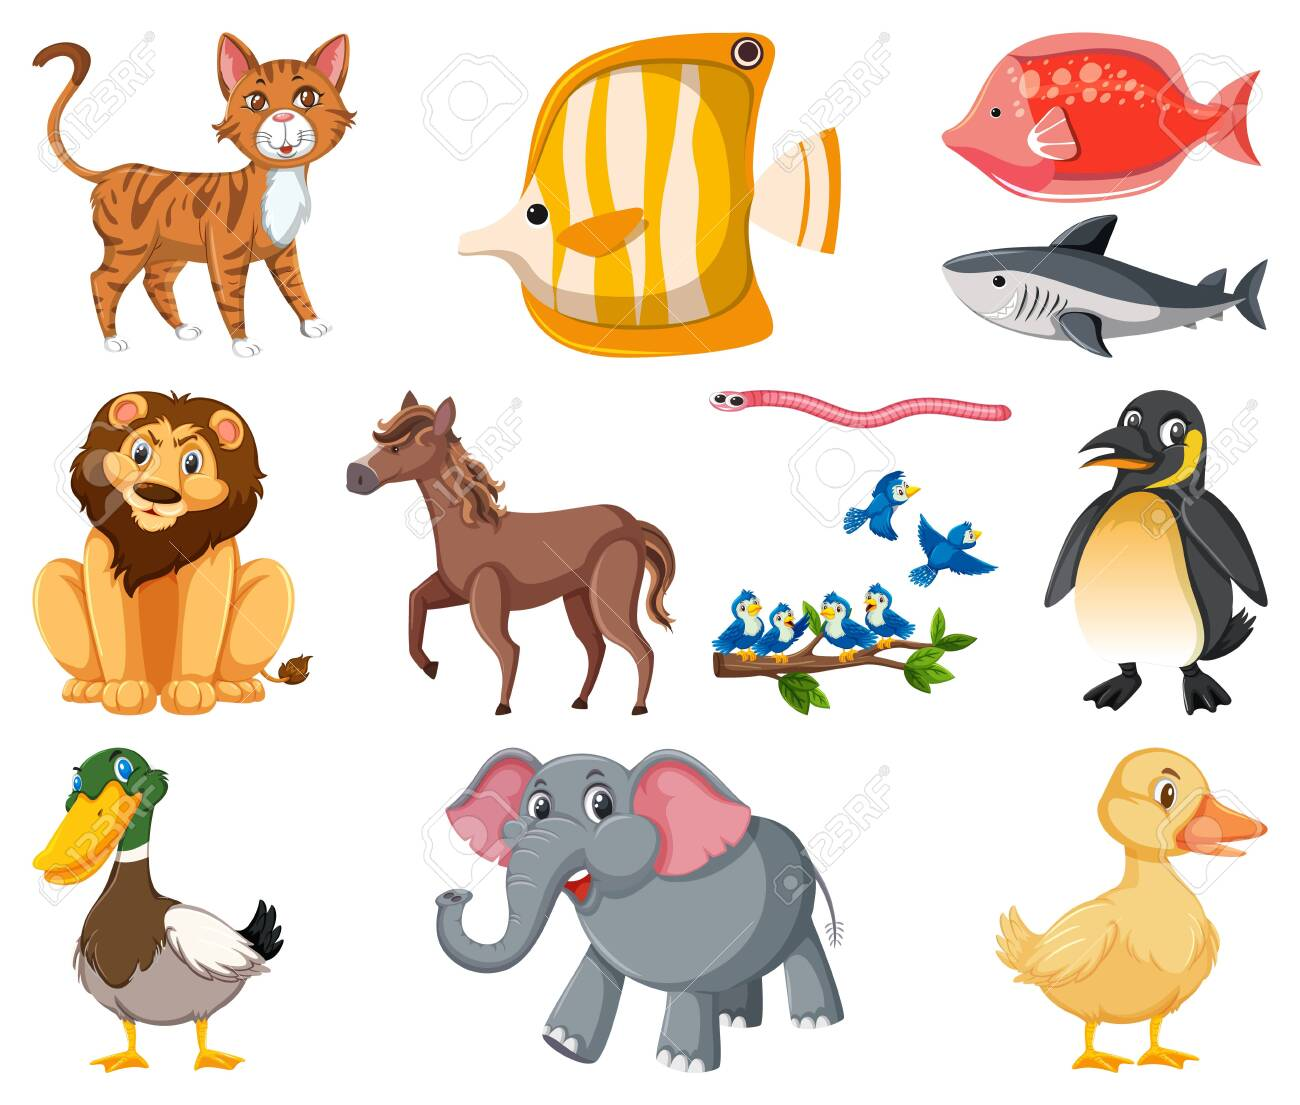 Large set of different types of animals on white background illustration - 143061617